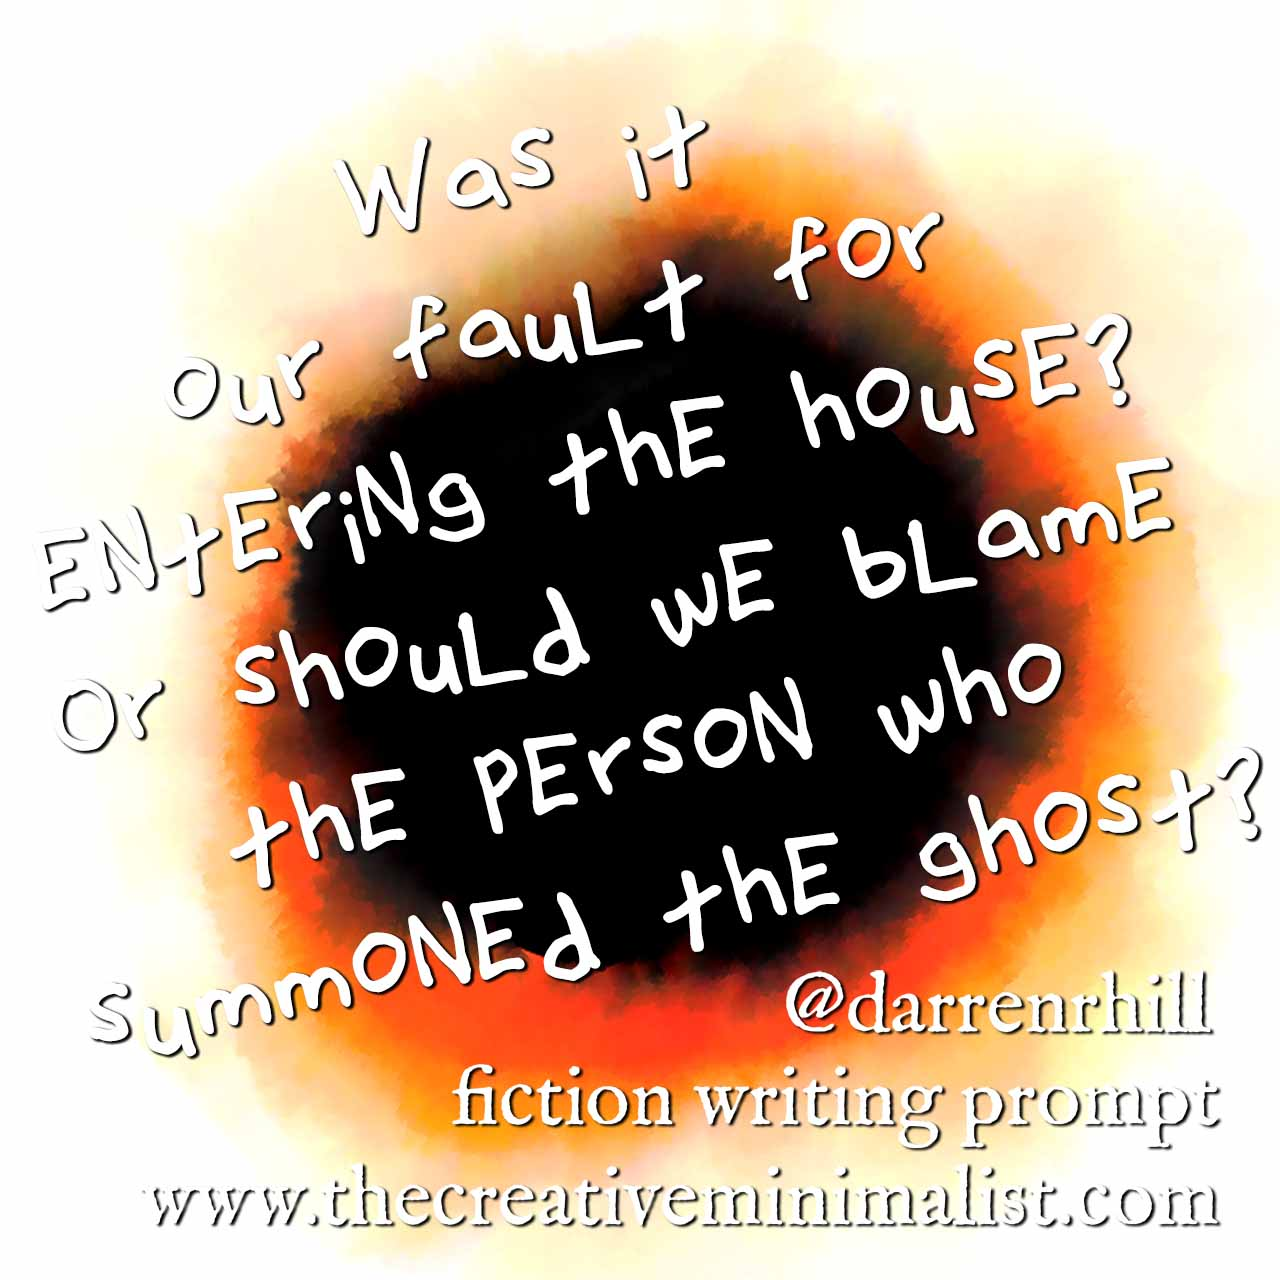 Was it our fault for entering the house? Or should we blame the person who summoned the ghost? - fiction writing prompt